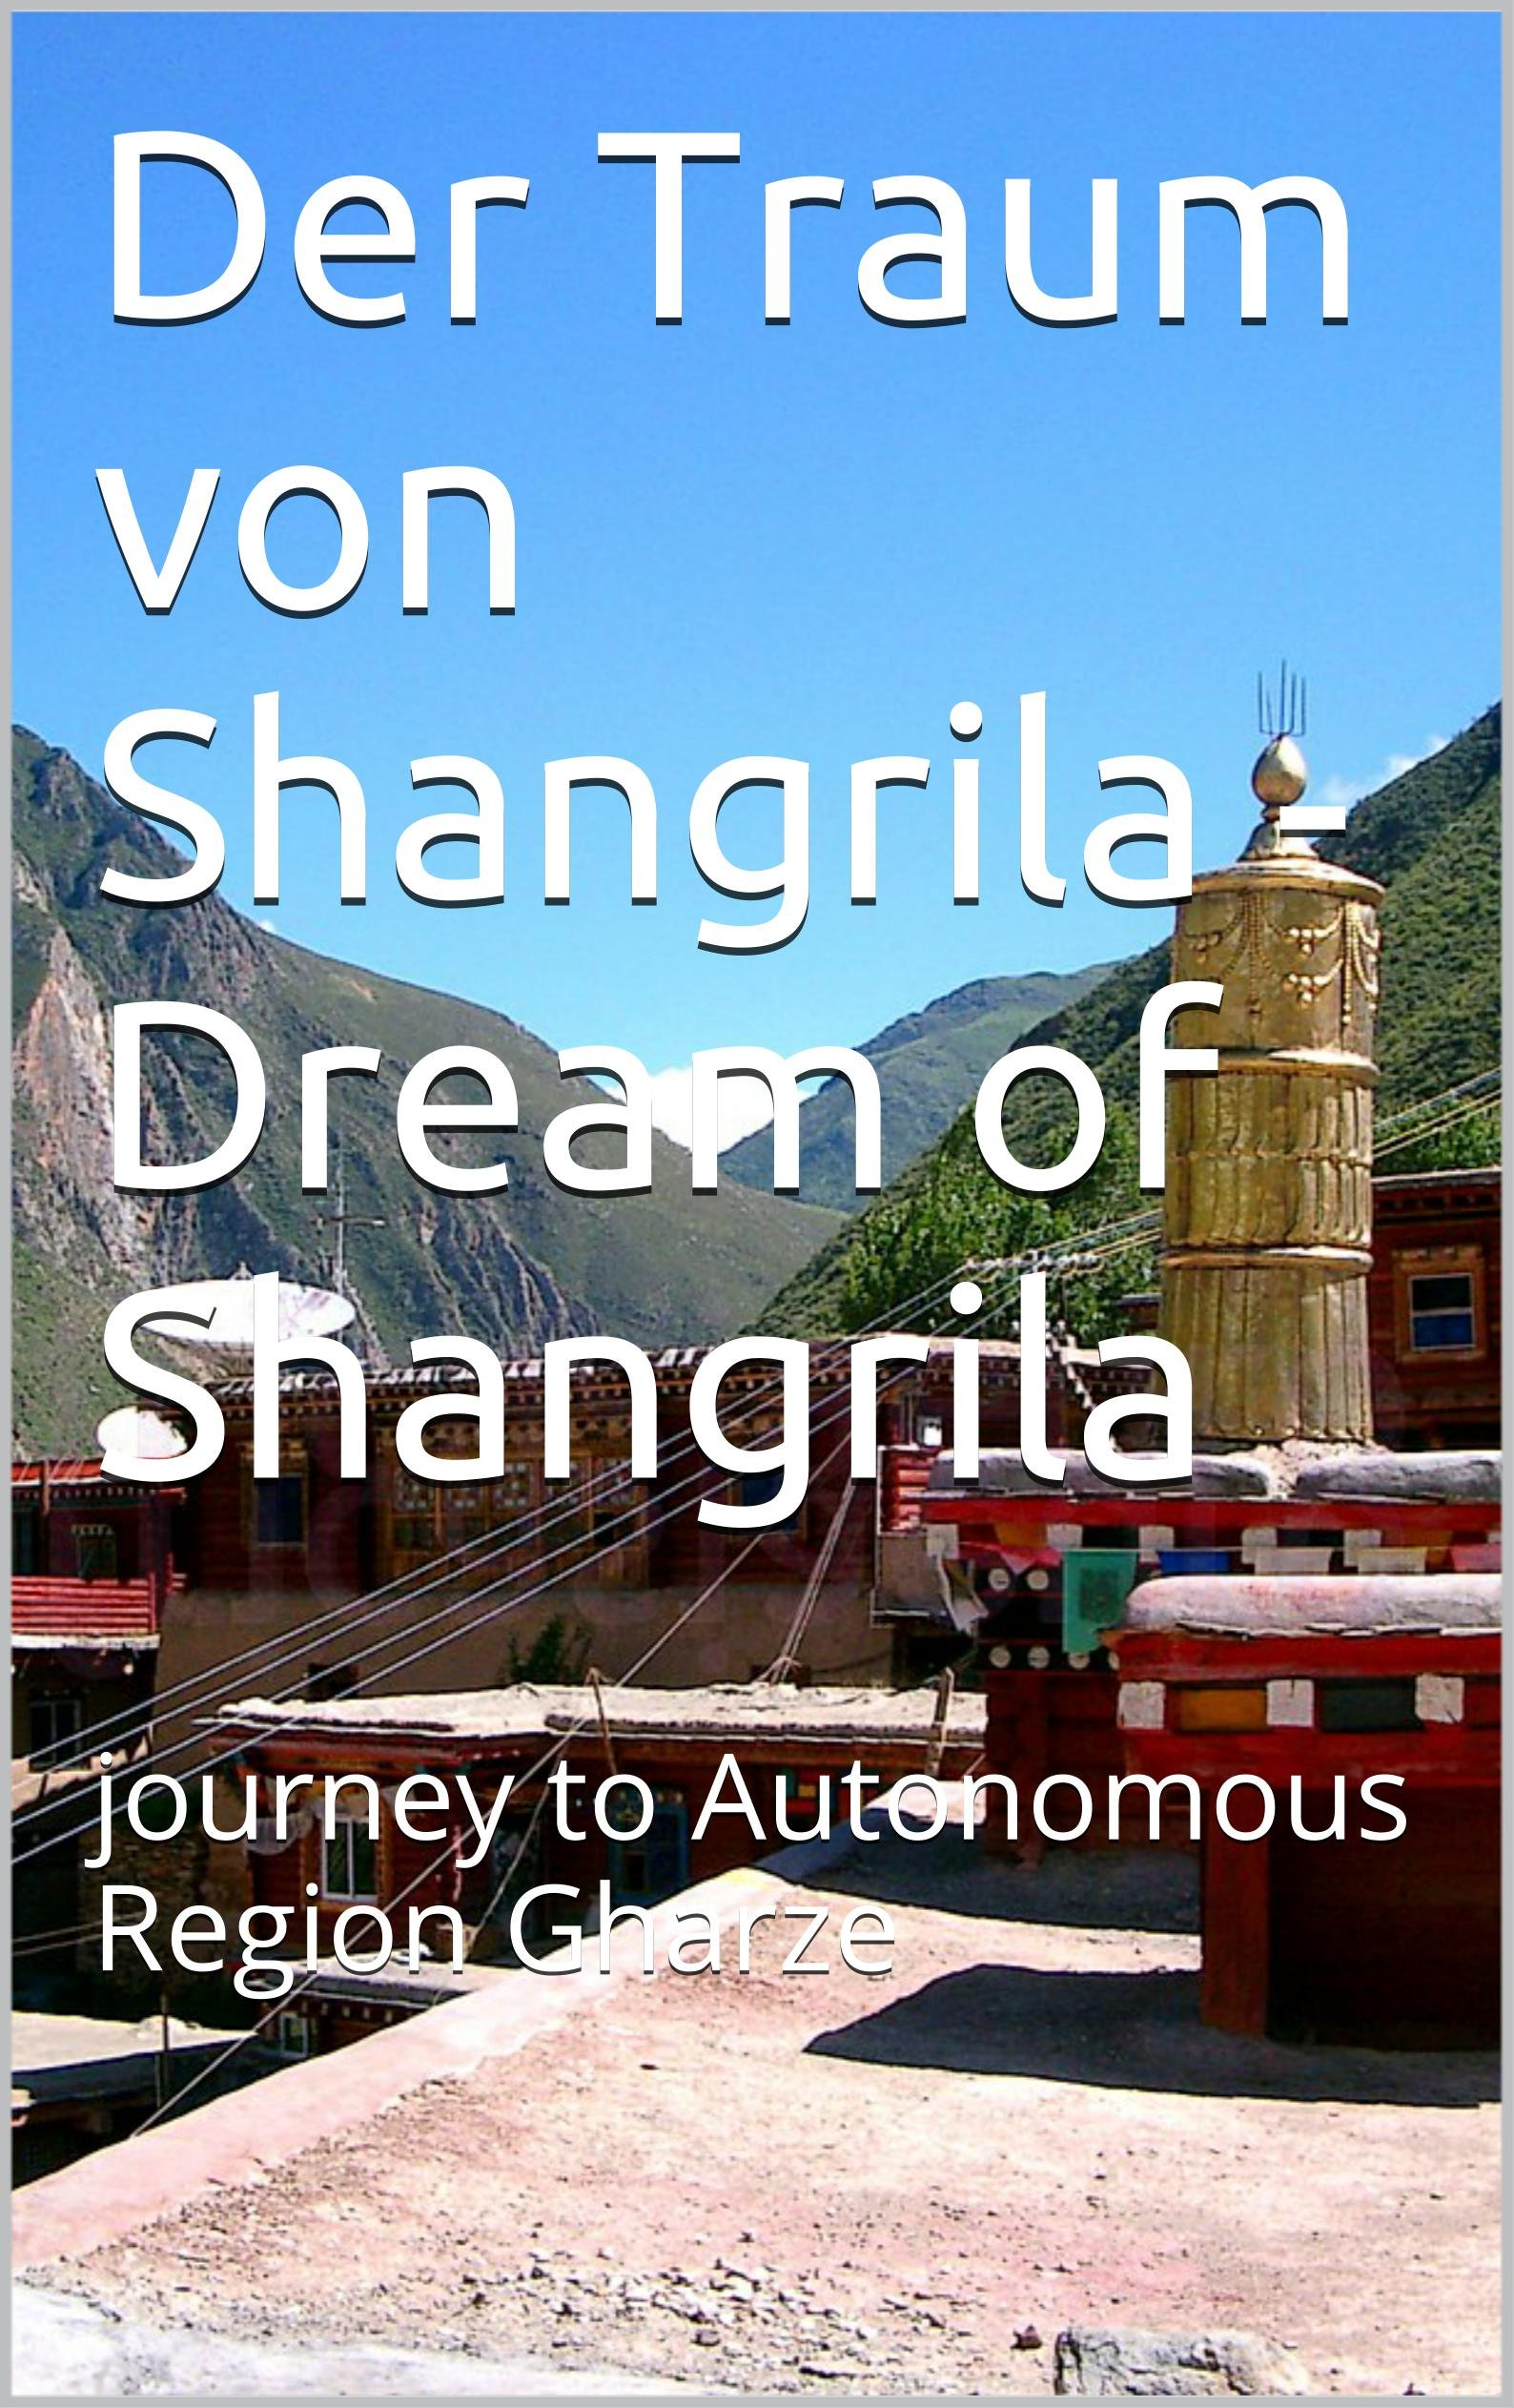 Der Traum von Shangrila -  Dream of Shangrila: journey to Autonomous Region Gharze (German Edition)